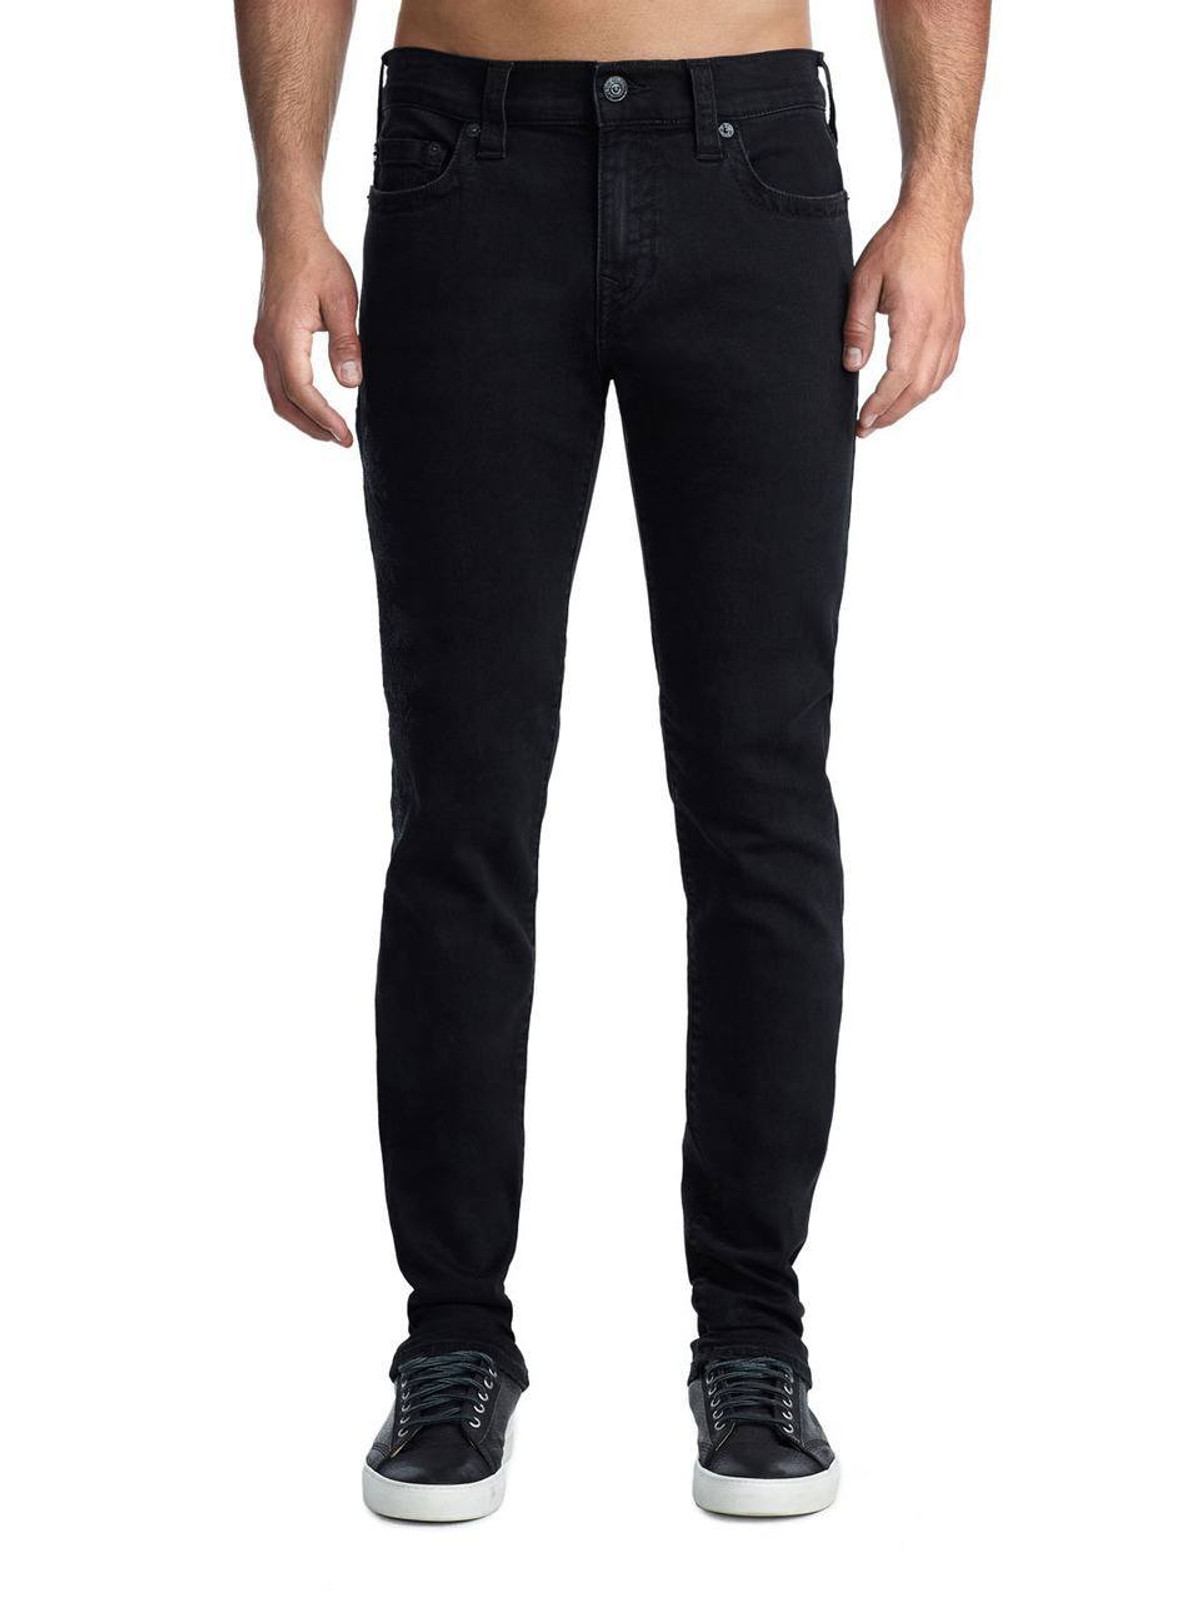 Embroidered Rocco Skinny Jean in Magnetic Field